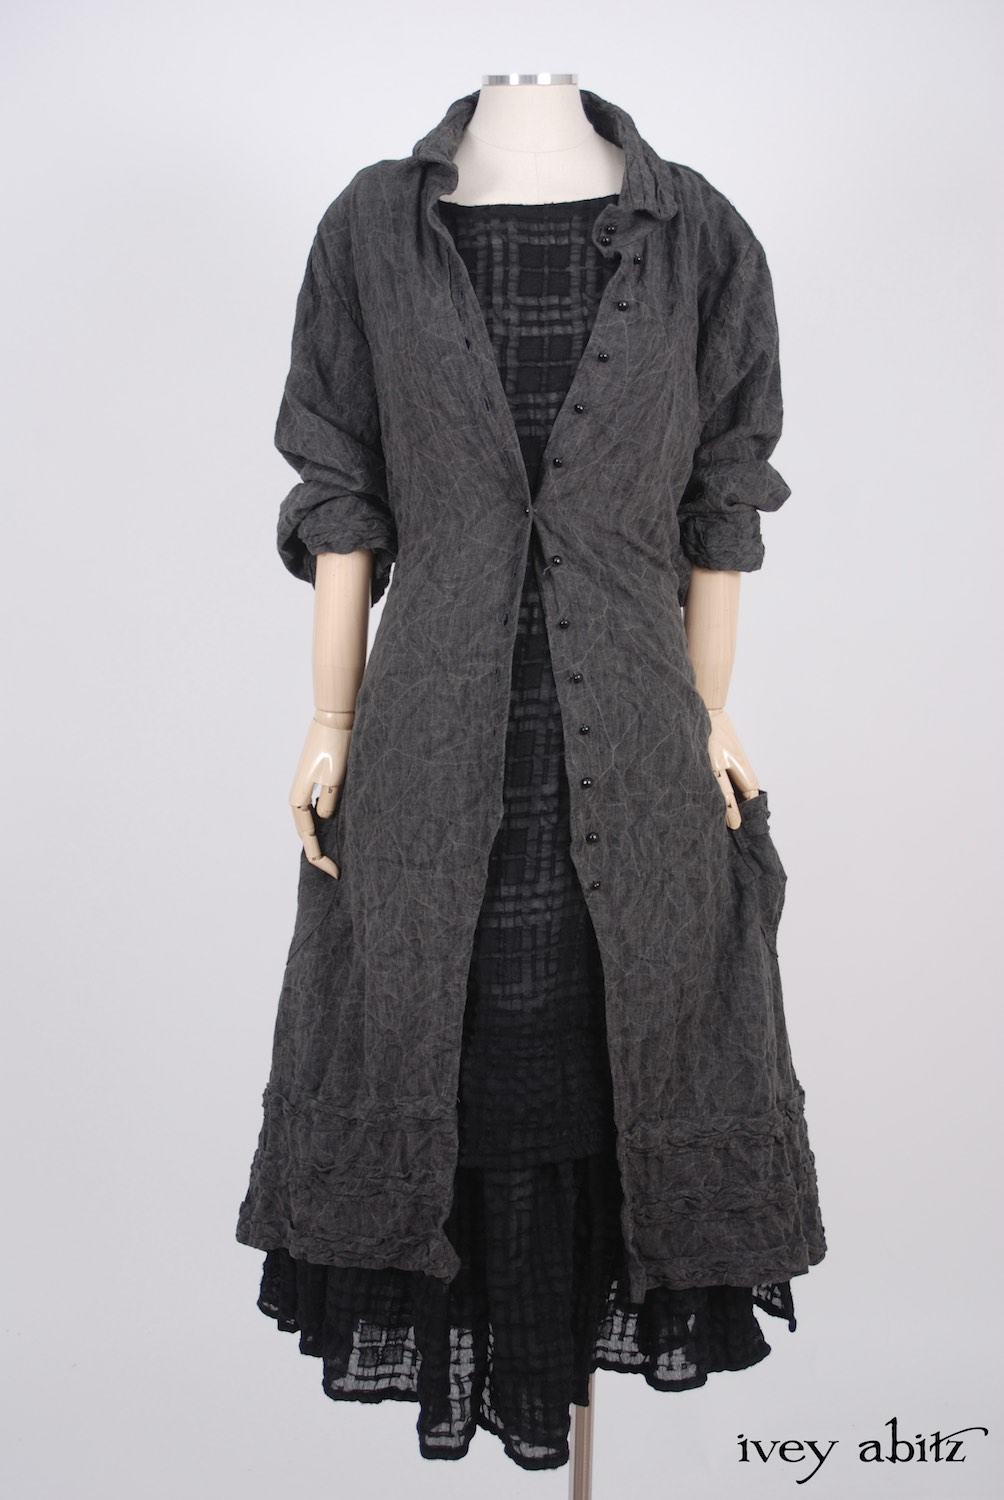 Ivey Abitz - Bartholomew Duster Coat in Sparrow Grey Antiqued Linen  - Blanchefleur Frock in Blackbird Plaid Challis, High Water Length  - Cilla Slip Frock in Dove Striped Voile, High Water Length